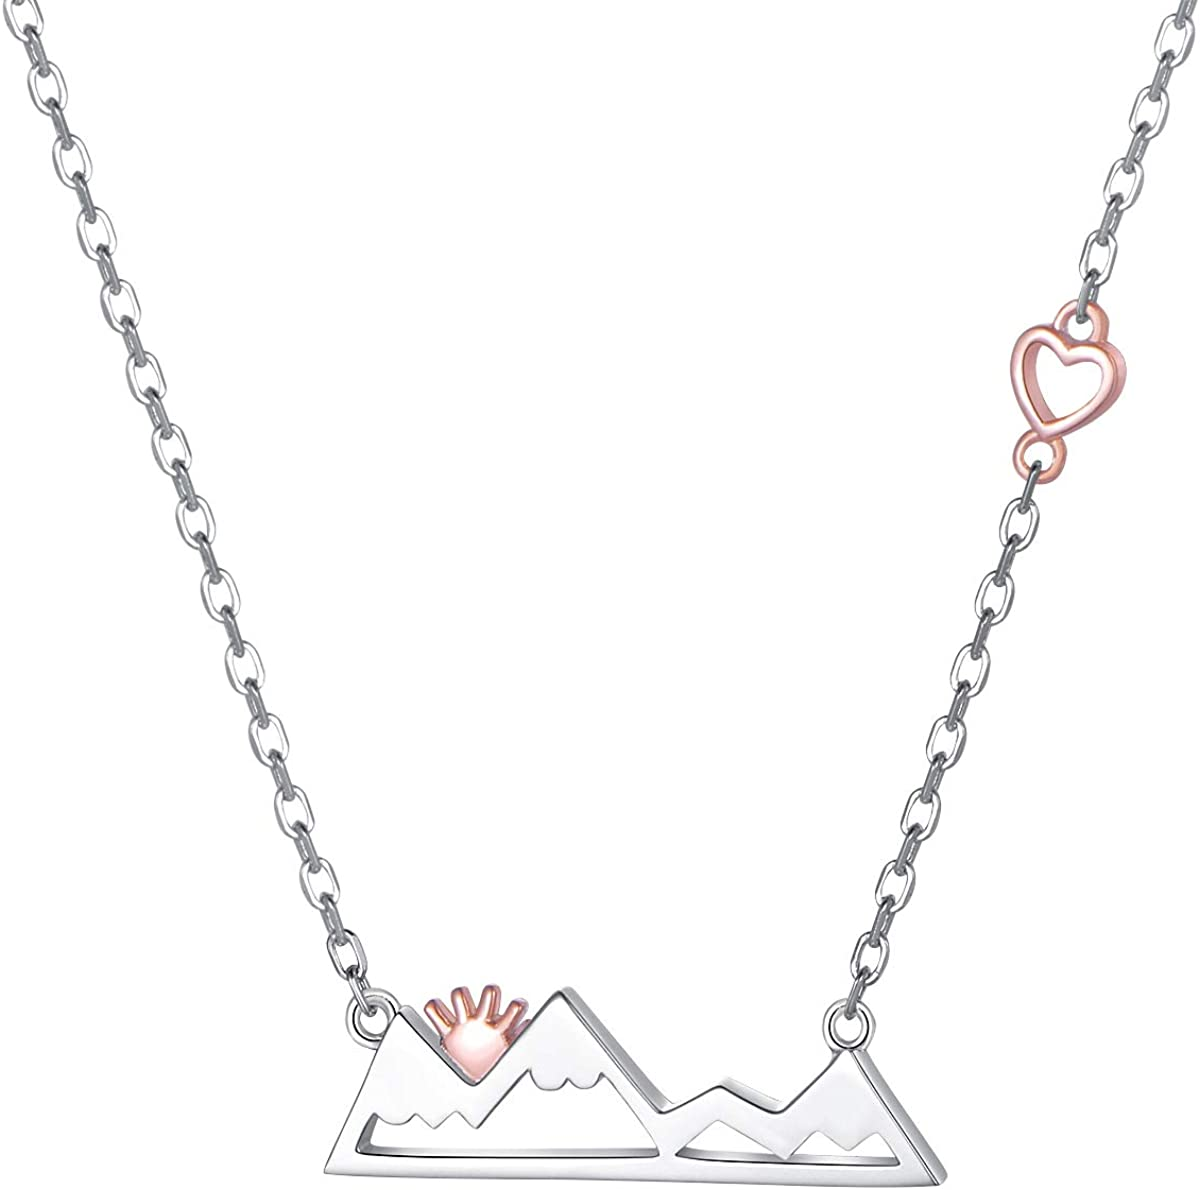 925 Sterling Silver Heart Snow Caps Mountain Range Necklace/Ring/Bracelet Gift for Women Teen Girls Hikers Outdoor Lovers